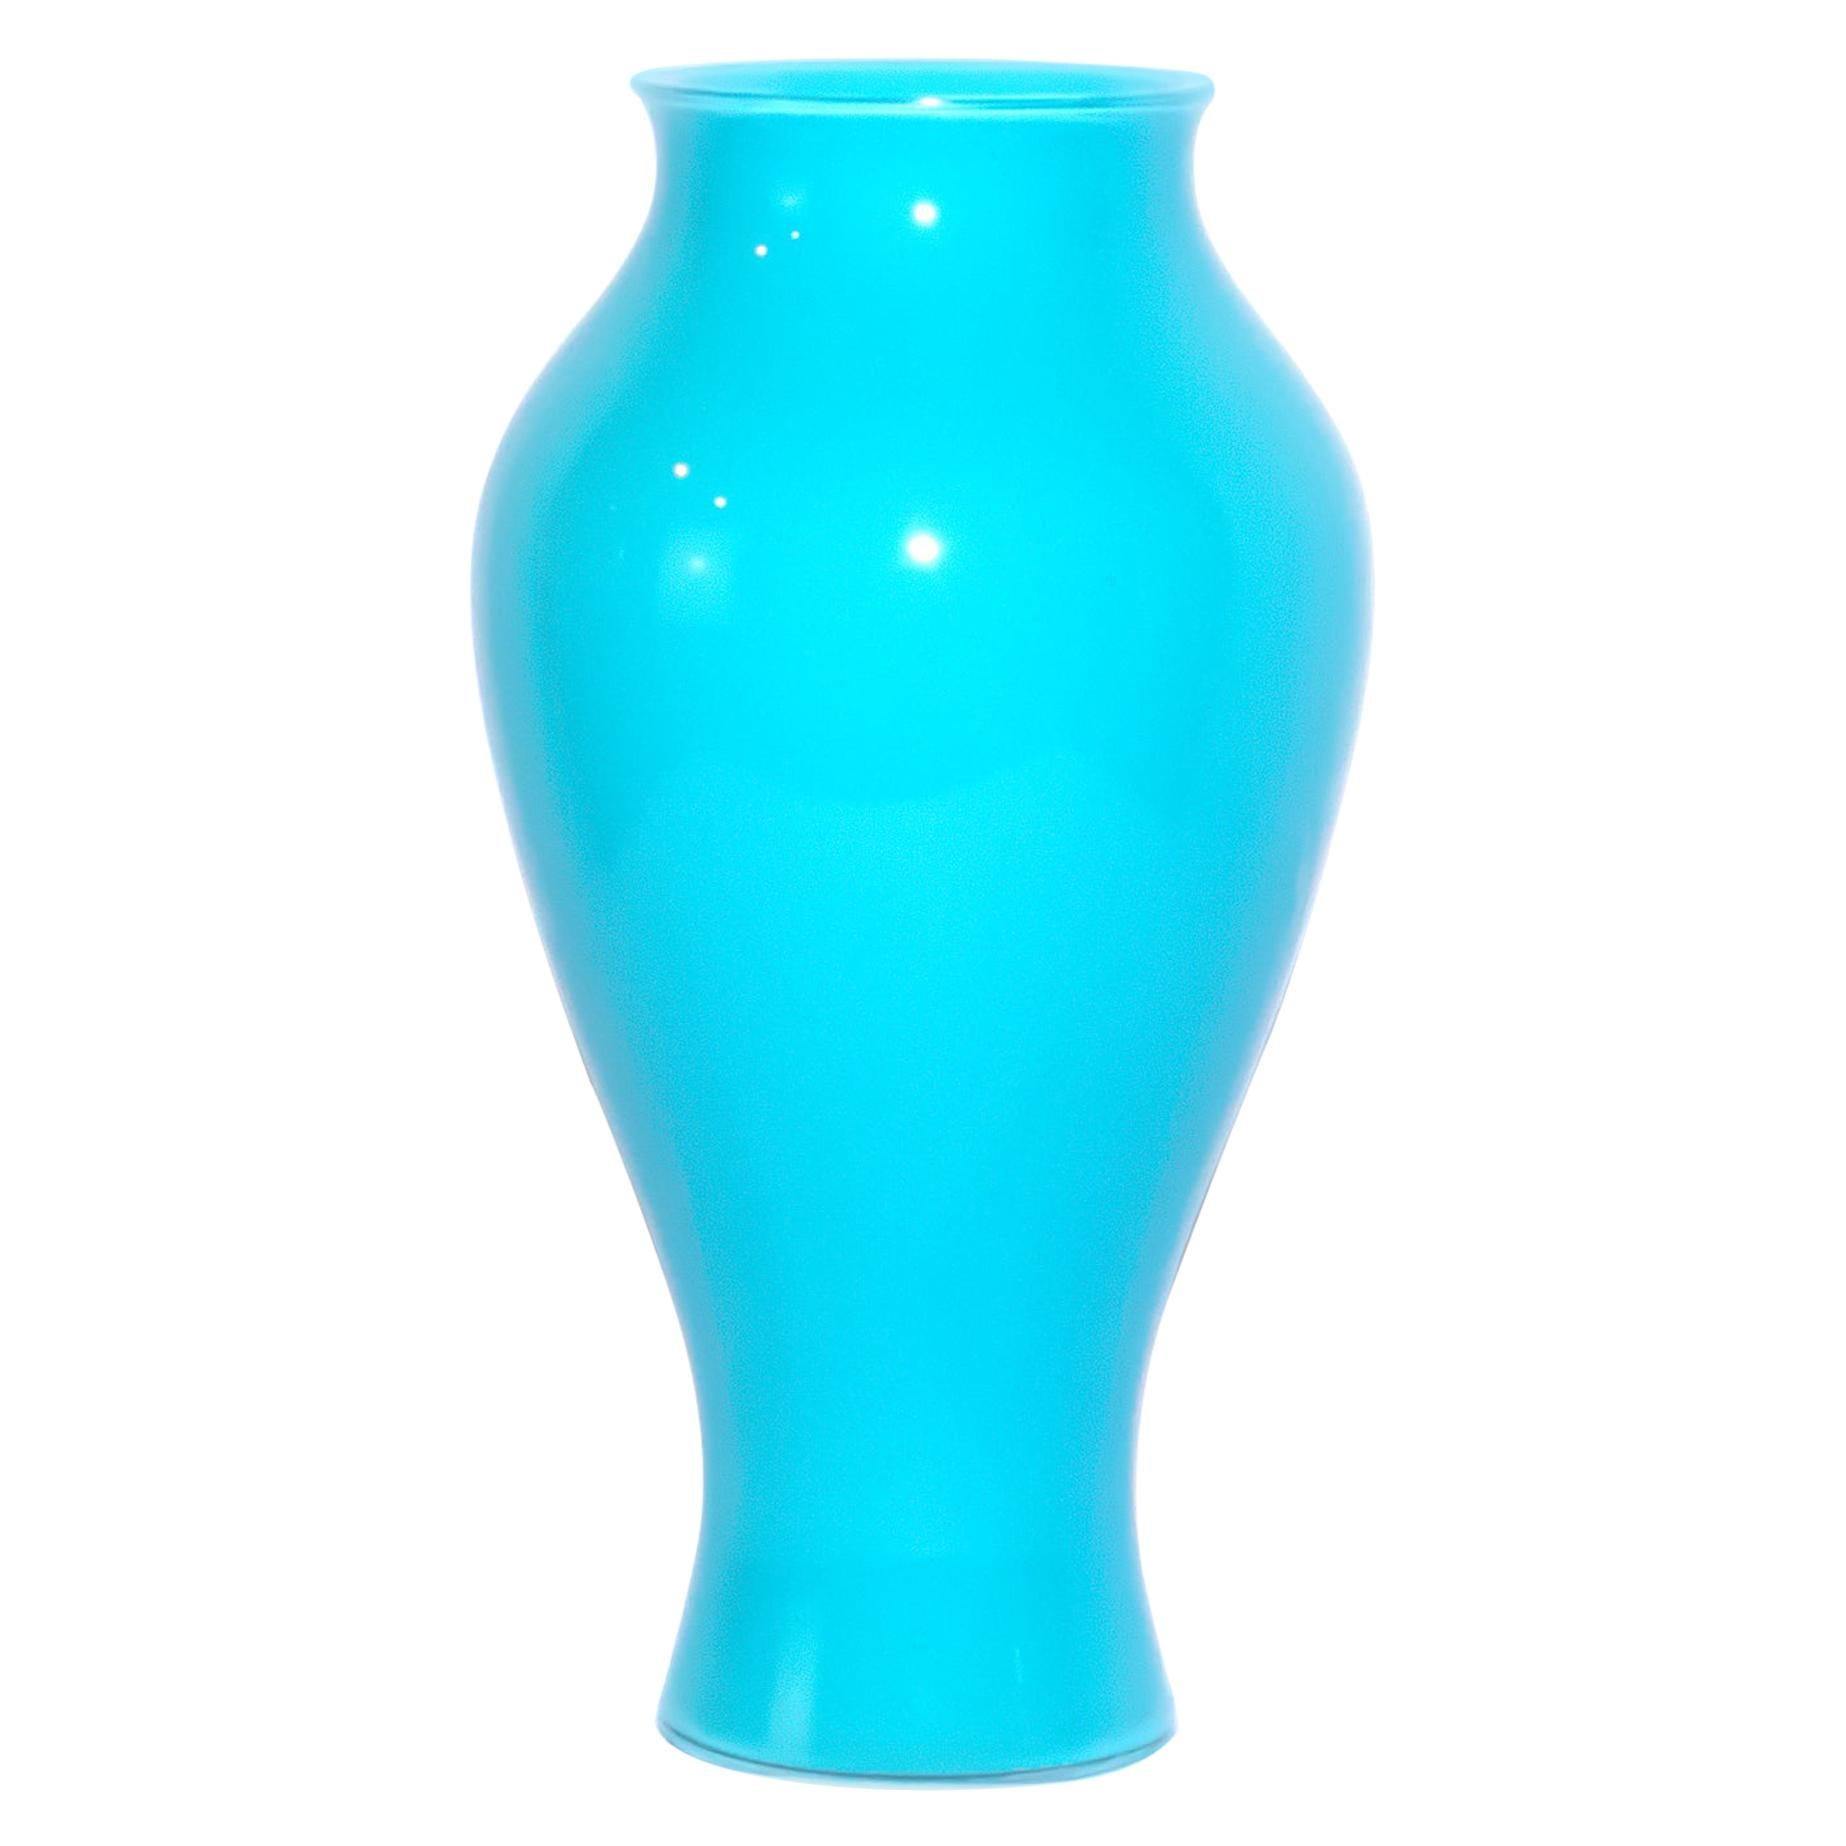 Light Blue Vase by Ercole Barovier for Barovier & Toso, 1970s